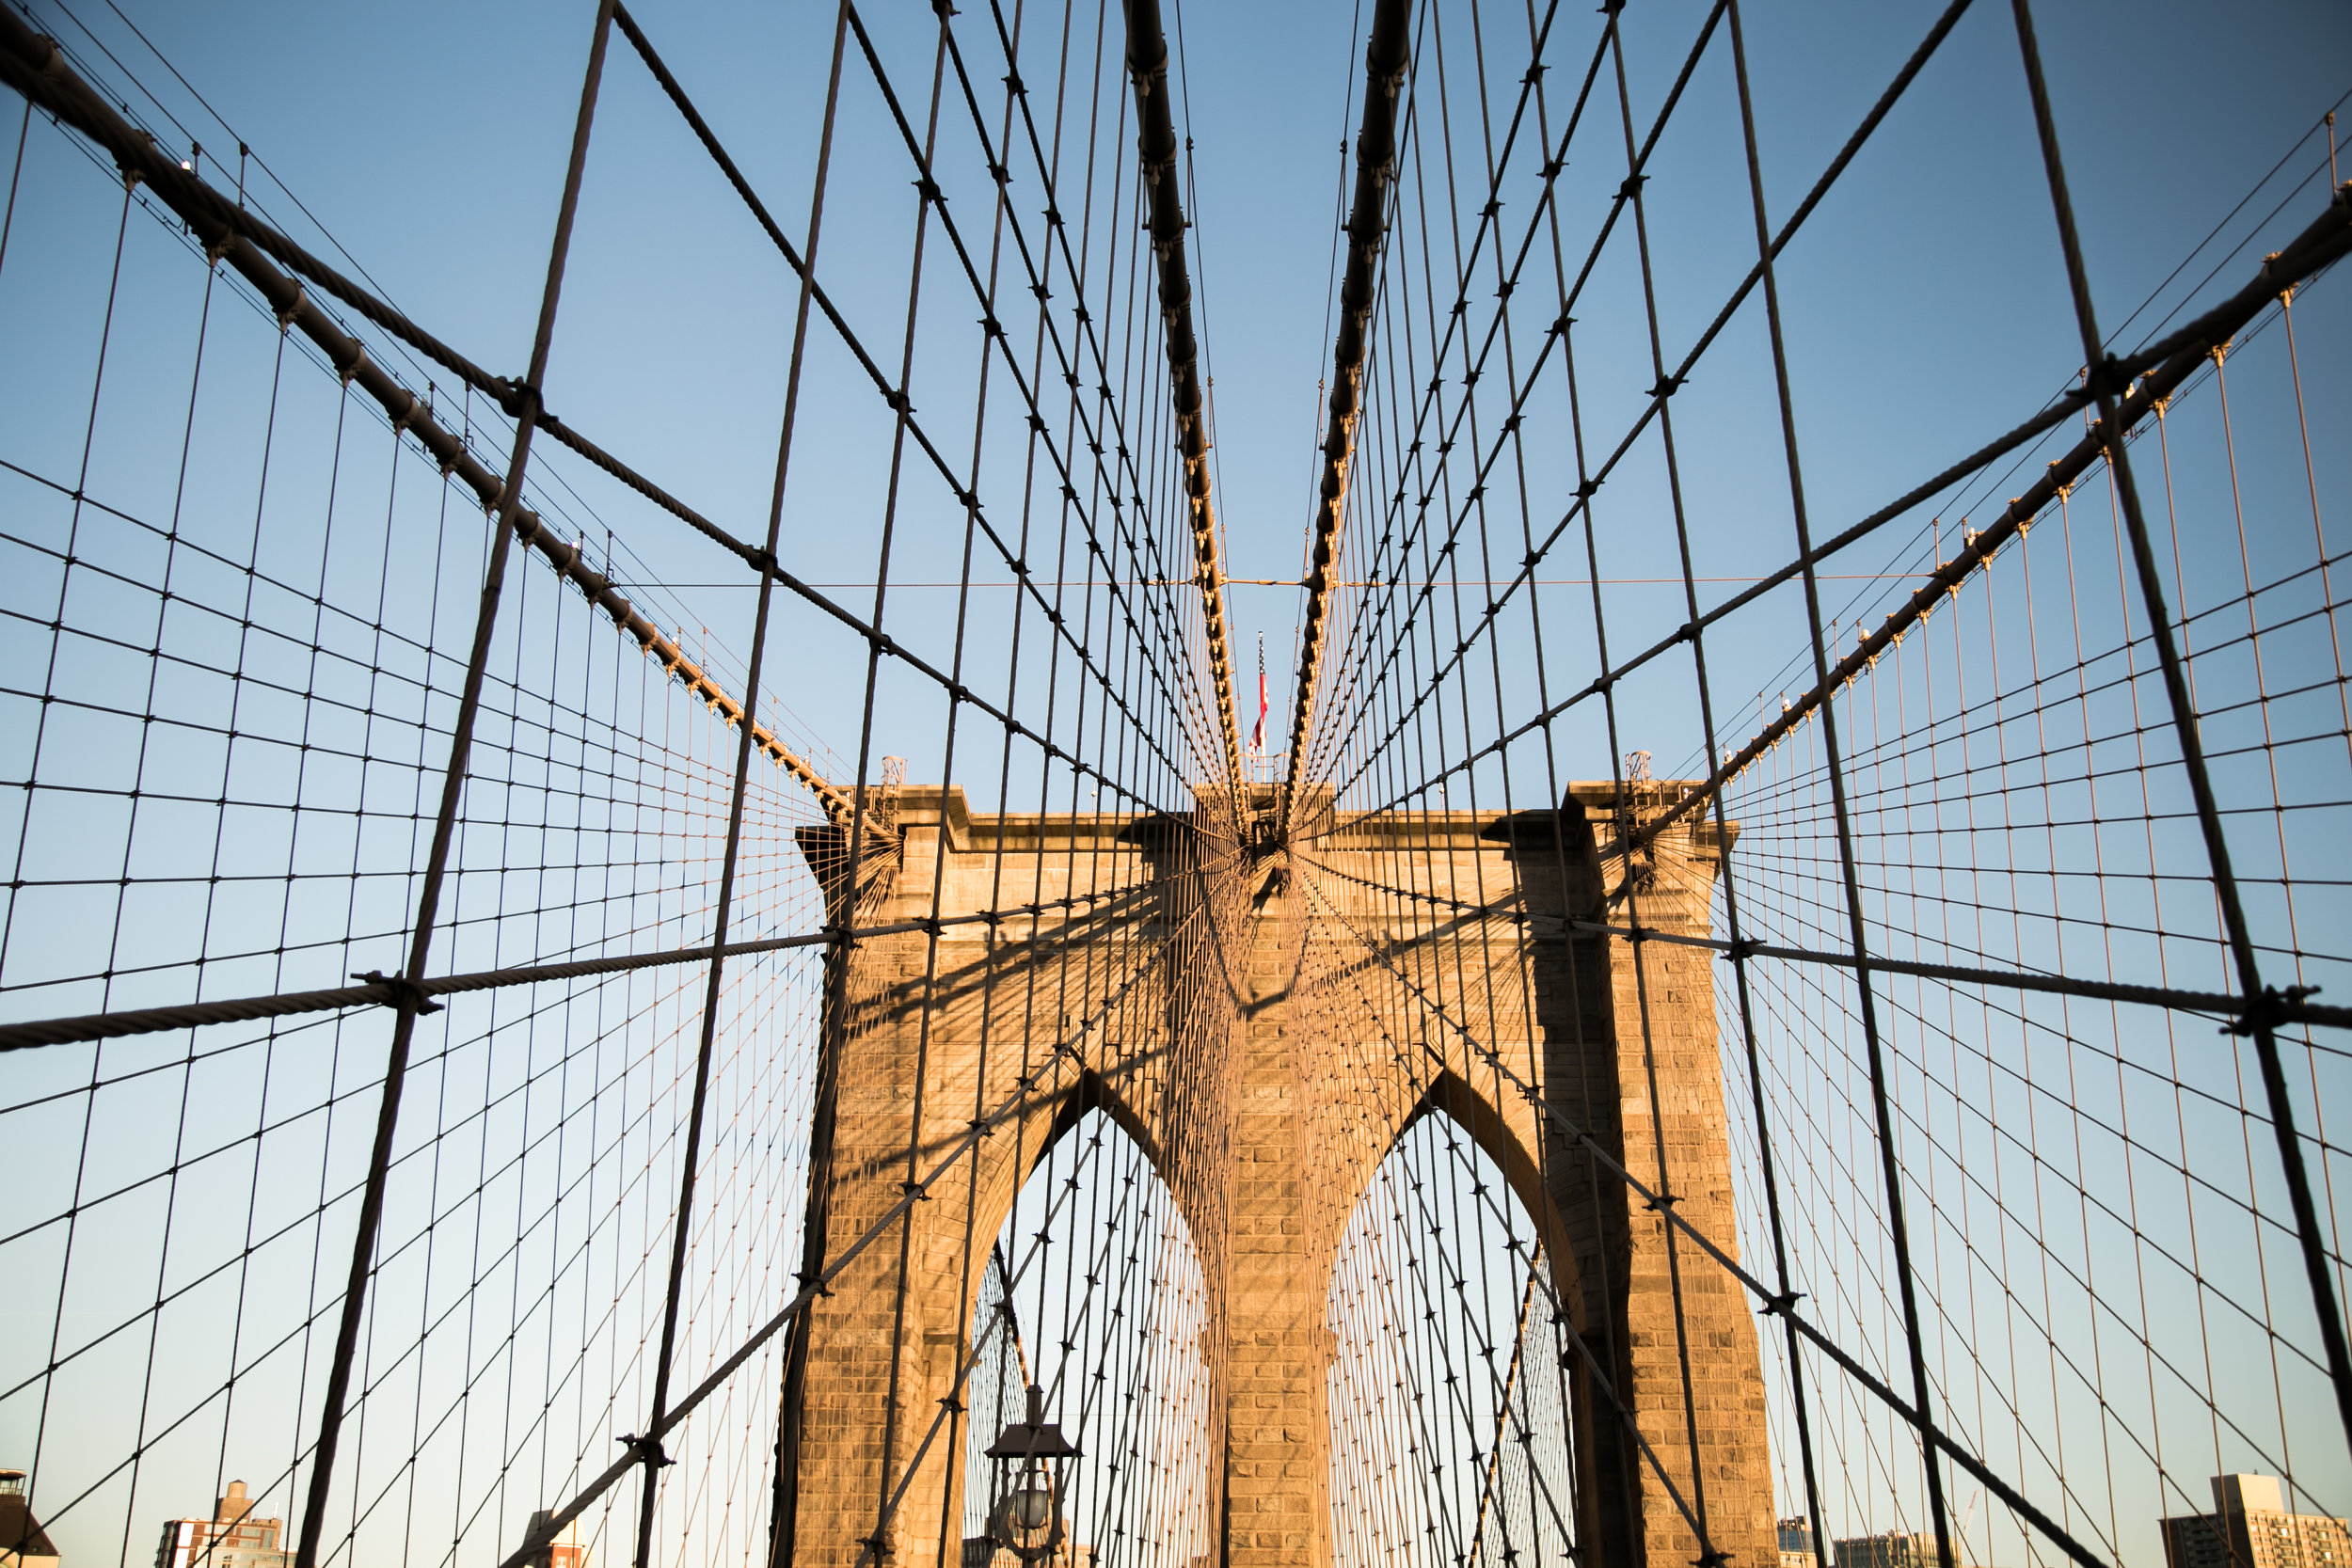 brooklynbridge-at-sunset-blog-voyage.jpg